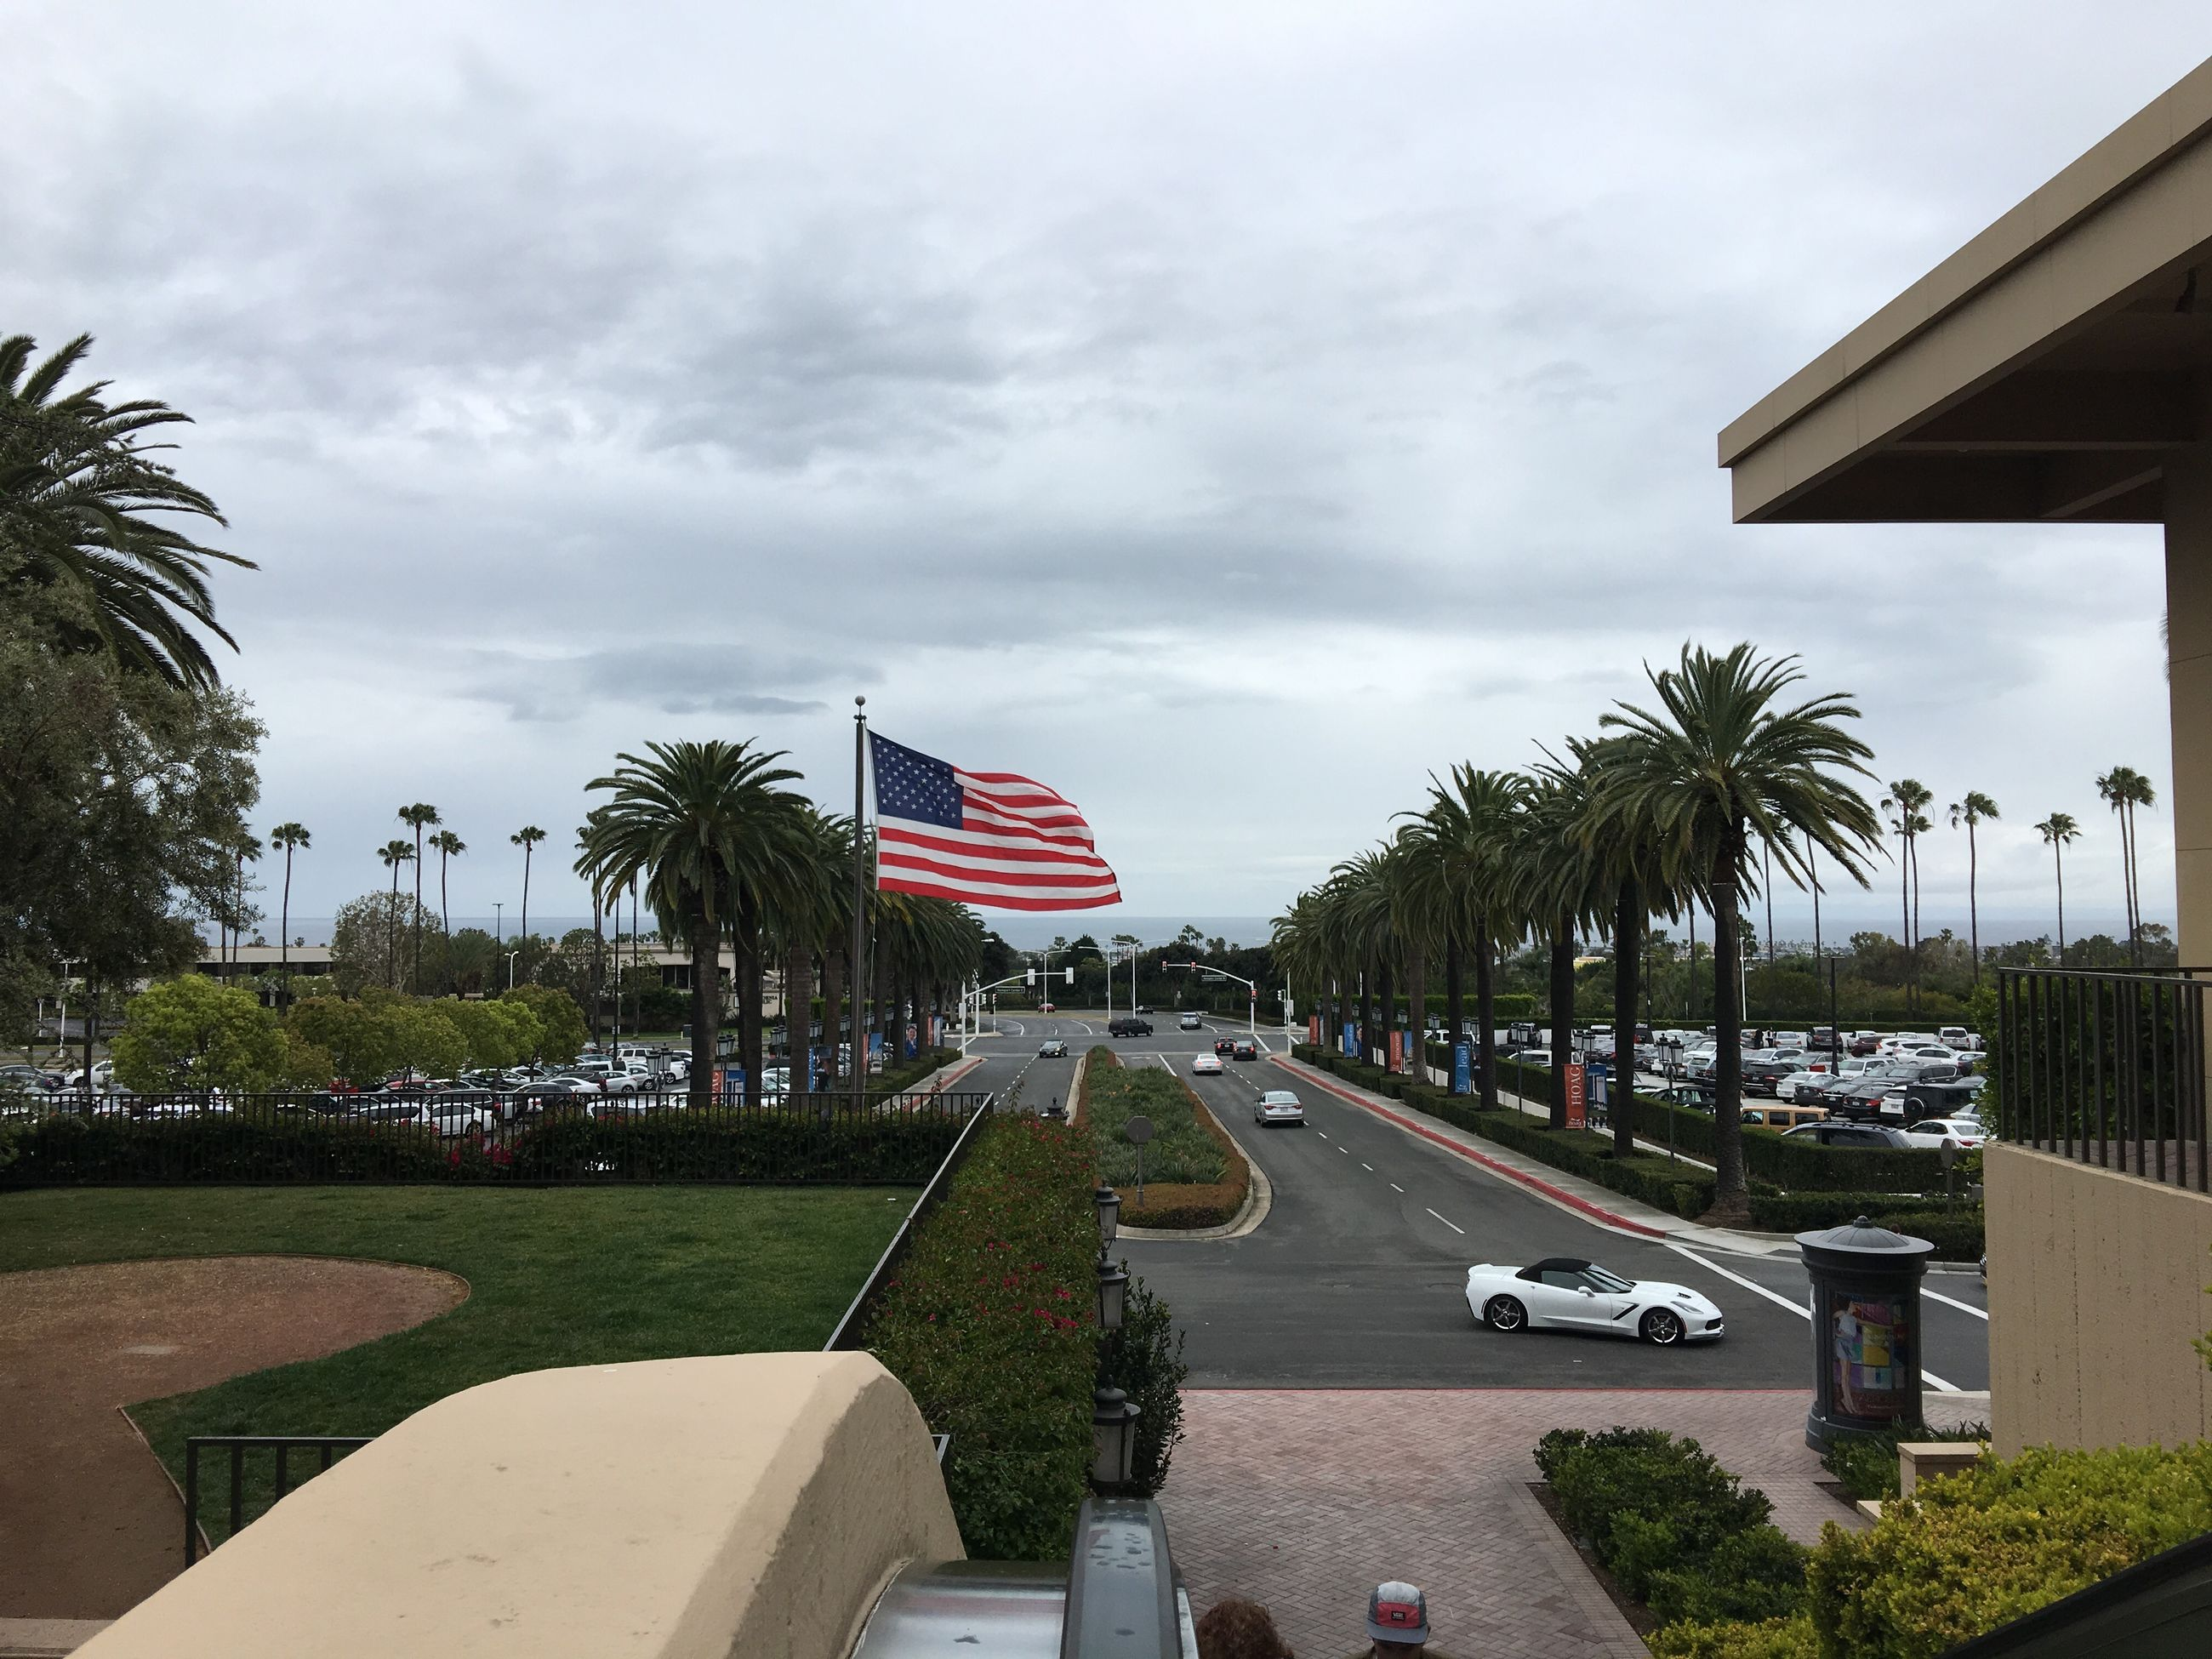 patriotism, flag, tree, sky, cloud - sky, striped, growth, no people, car, outdoors, built structure, palm tree, day, nature, stars and stripes, architecture